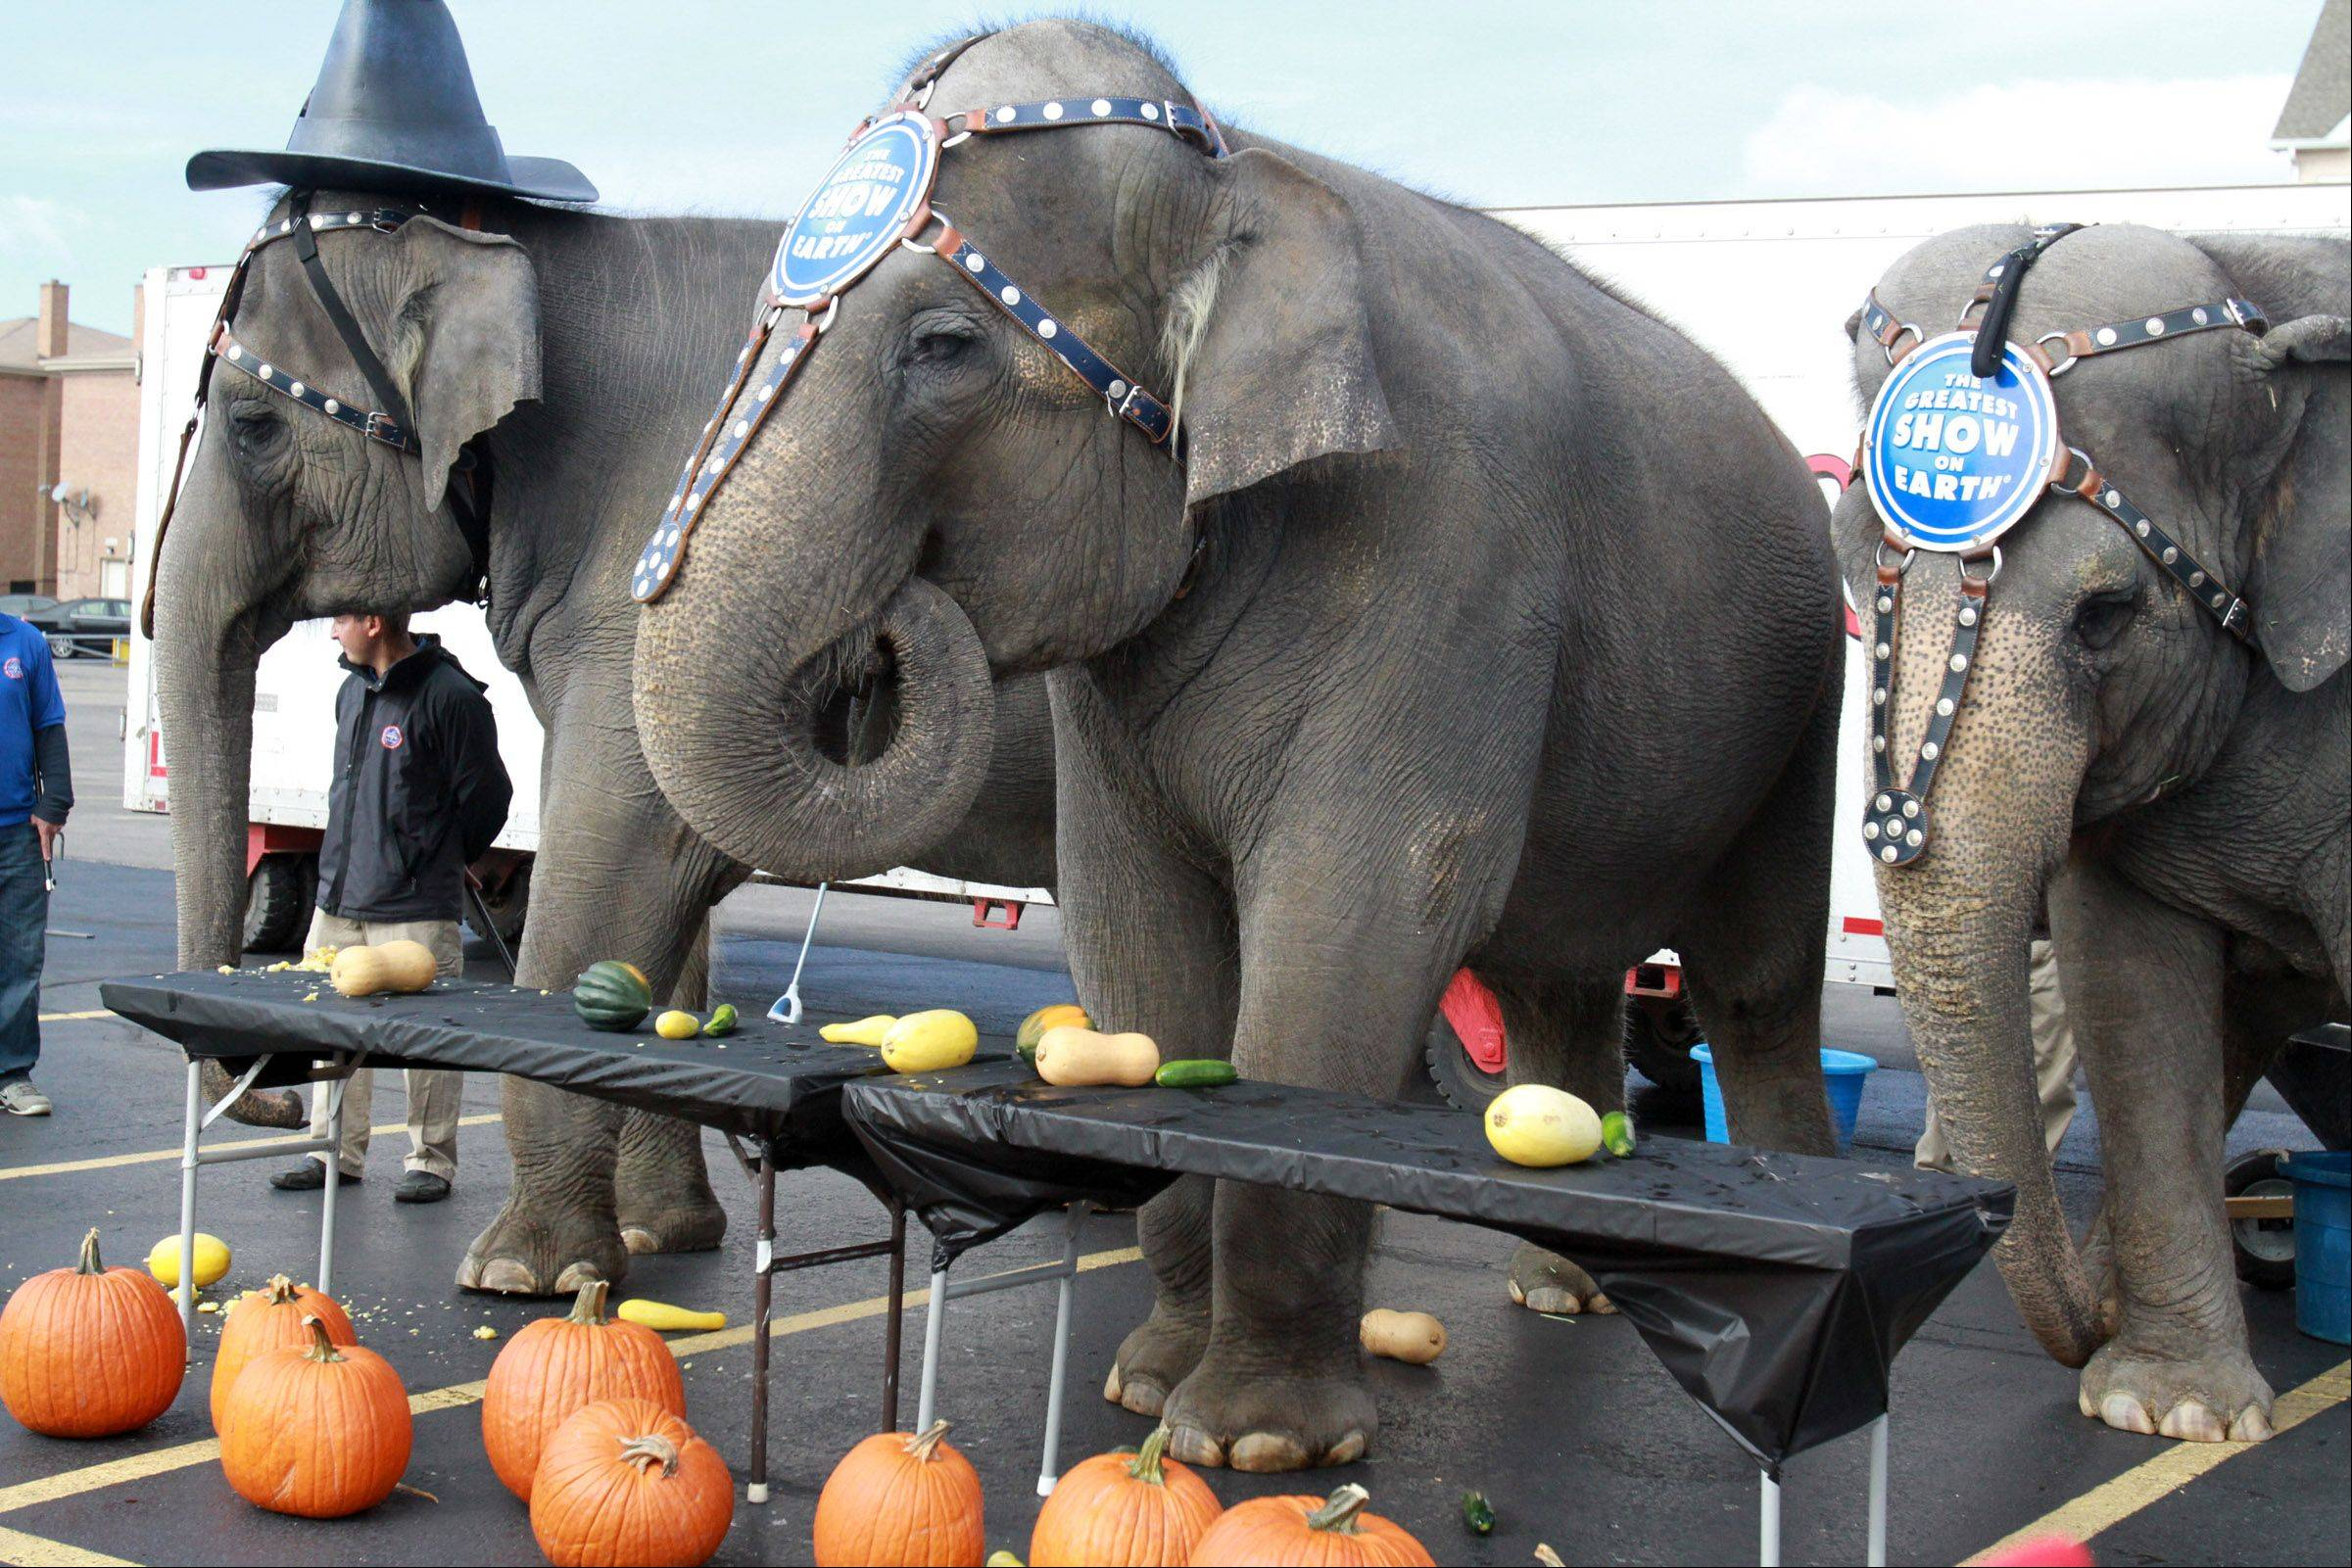 Ringling Brothers and Barnum & Bailey Circus elephant Kelly Ann, left, wearing a witch hat, and two other Asian elephants eat fall vegetables as part of their arrival Wednesday at the Allstate Arena in Rosemont. The circus will perform there Thursday through Nov. 11.